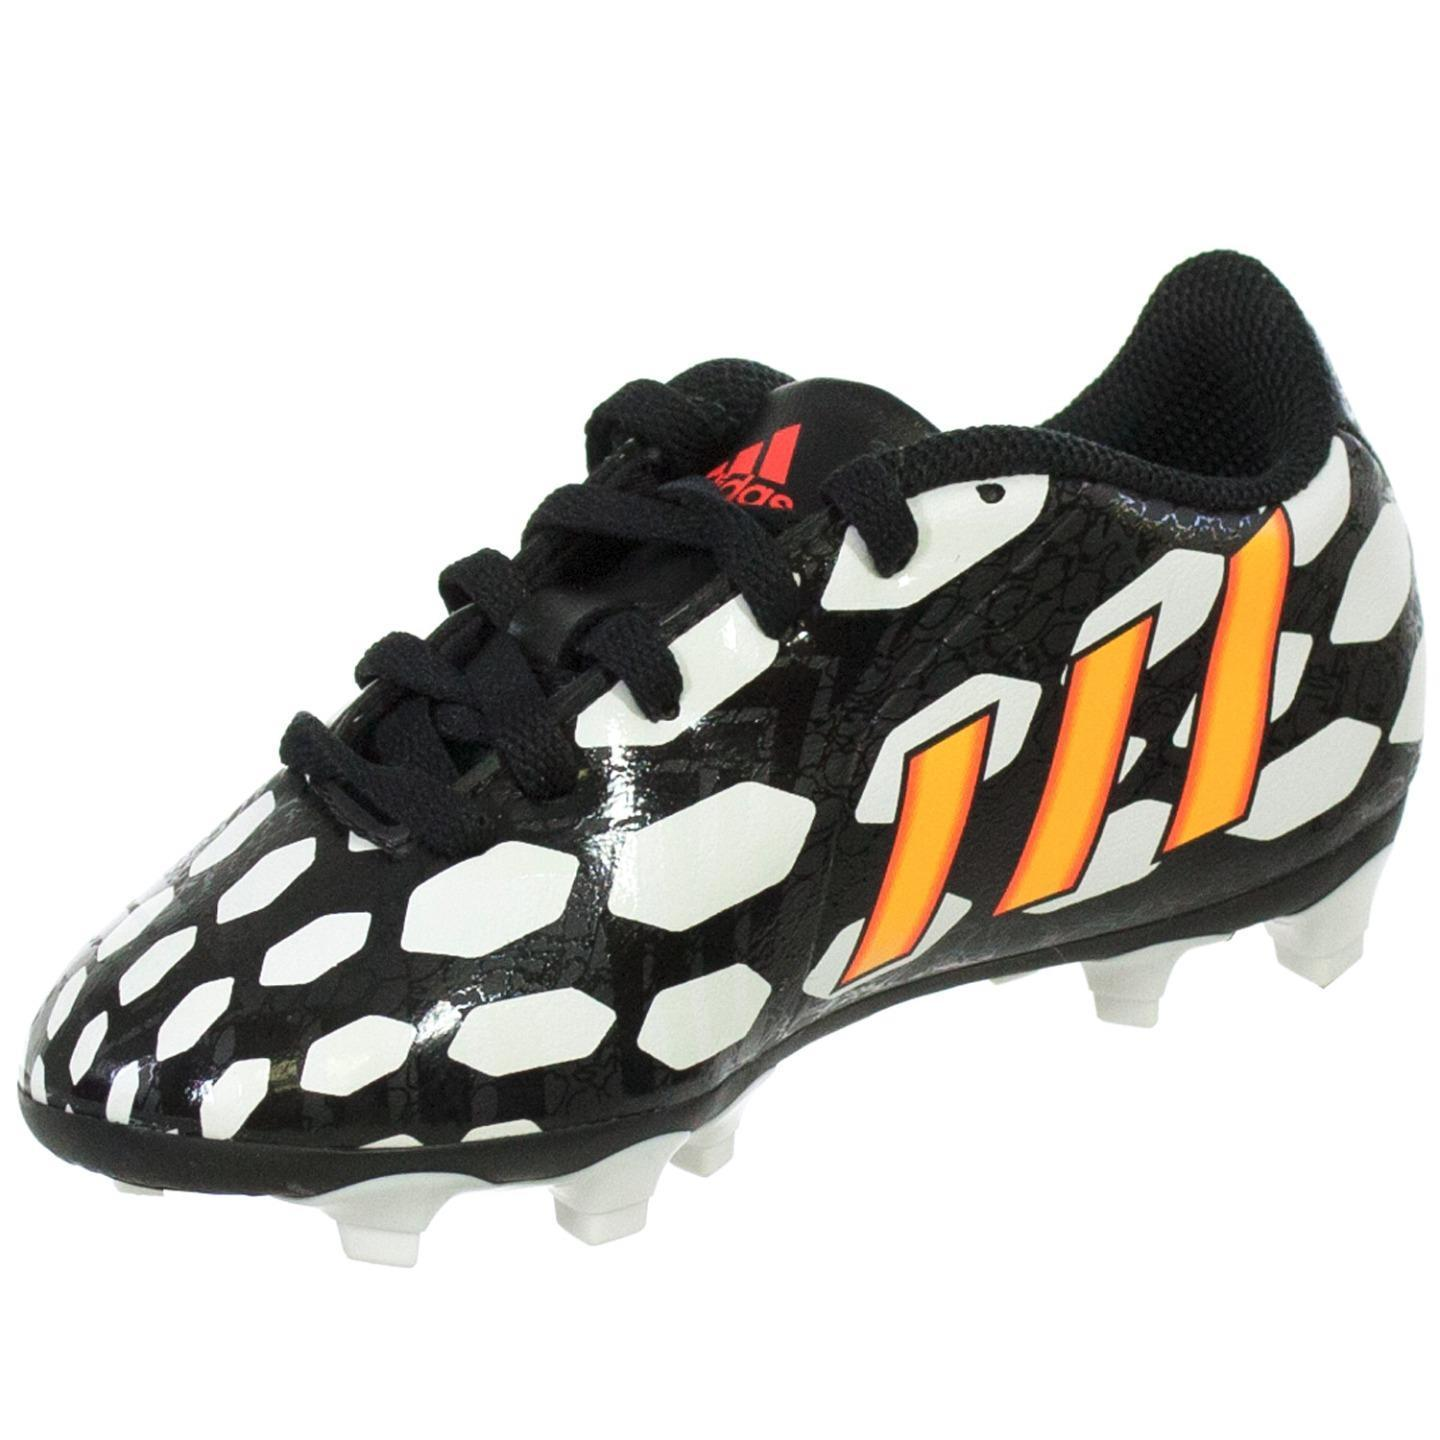 59a7d06c8b75 Shop ADIDAS PREDITO LZ FG (WC) Youth Molded Soccer Cleats - Free Shipping  On Orders Over  45 - Overstock - 15341586